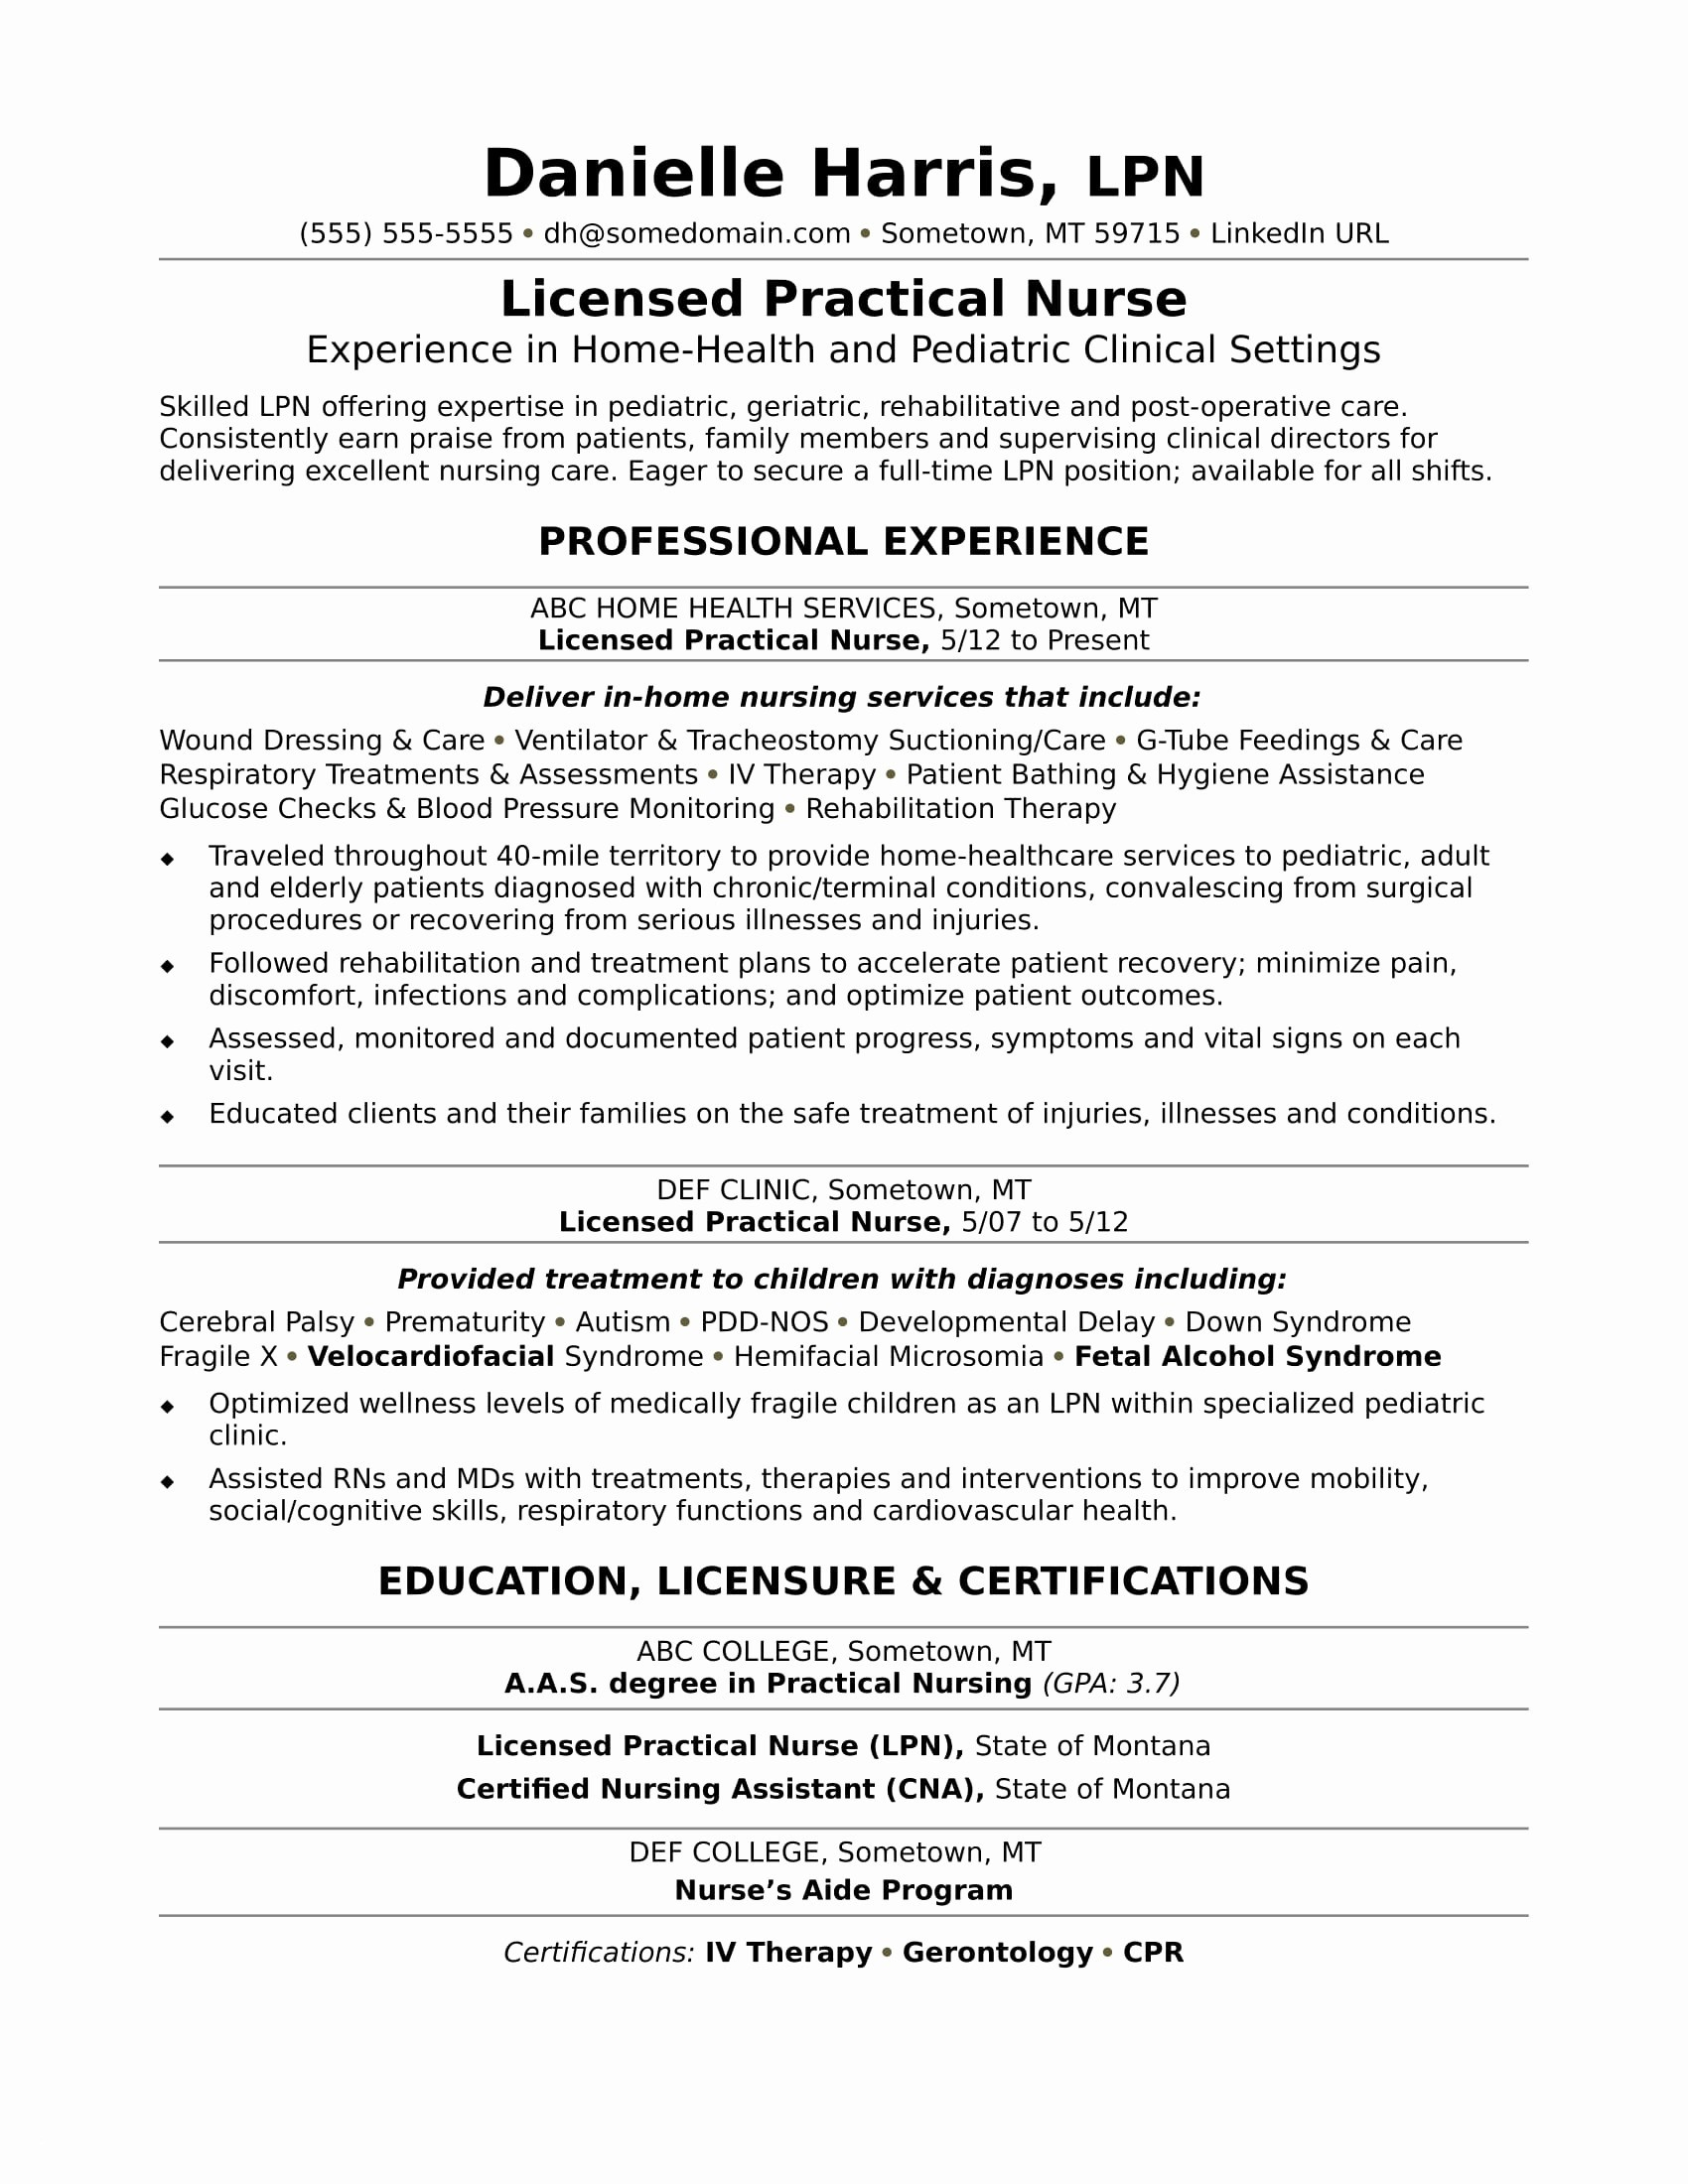 Professional Experience Resume - Resume for Nursing Student Luxury Resume for Nurse Luxury New Nurse